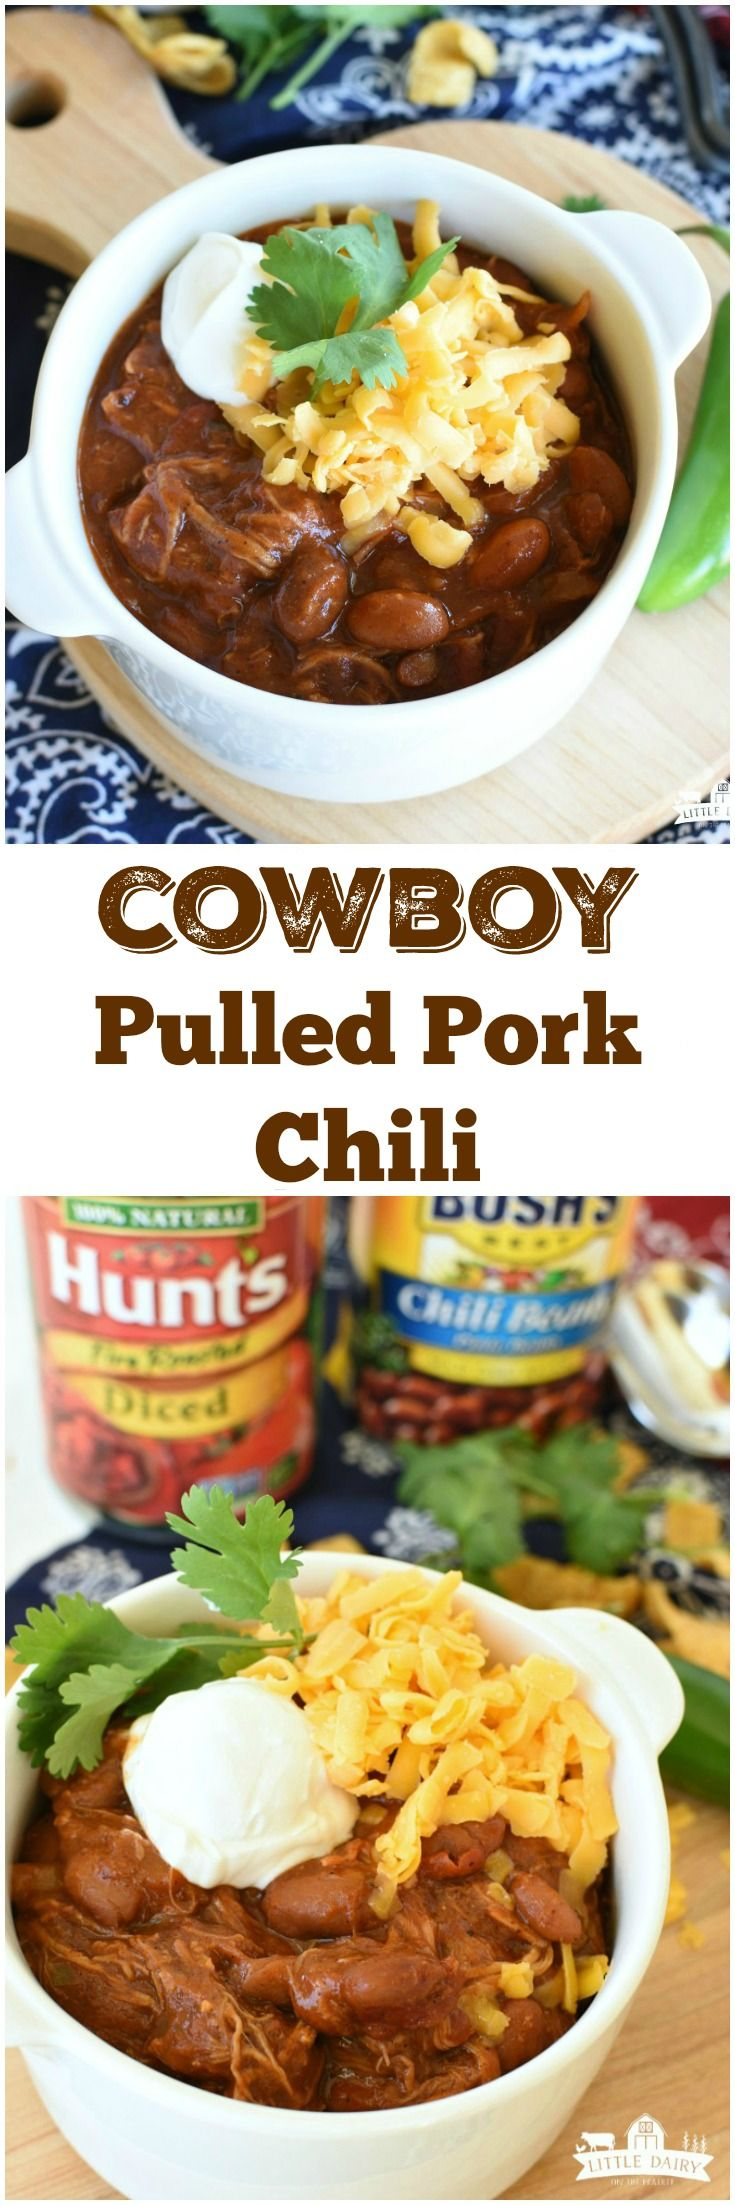 #AD Hillbilly Pulled Pork Chili is a slow cooker chili that's packed with sweet, smoky, and a little bit of spicy flavors!